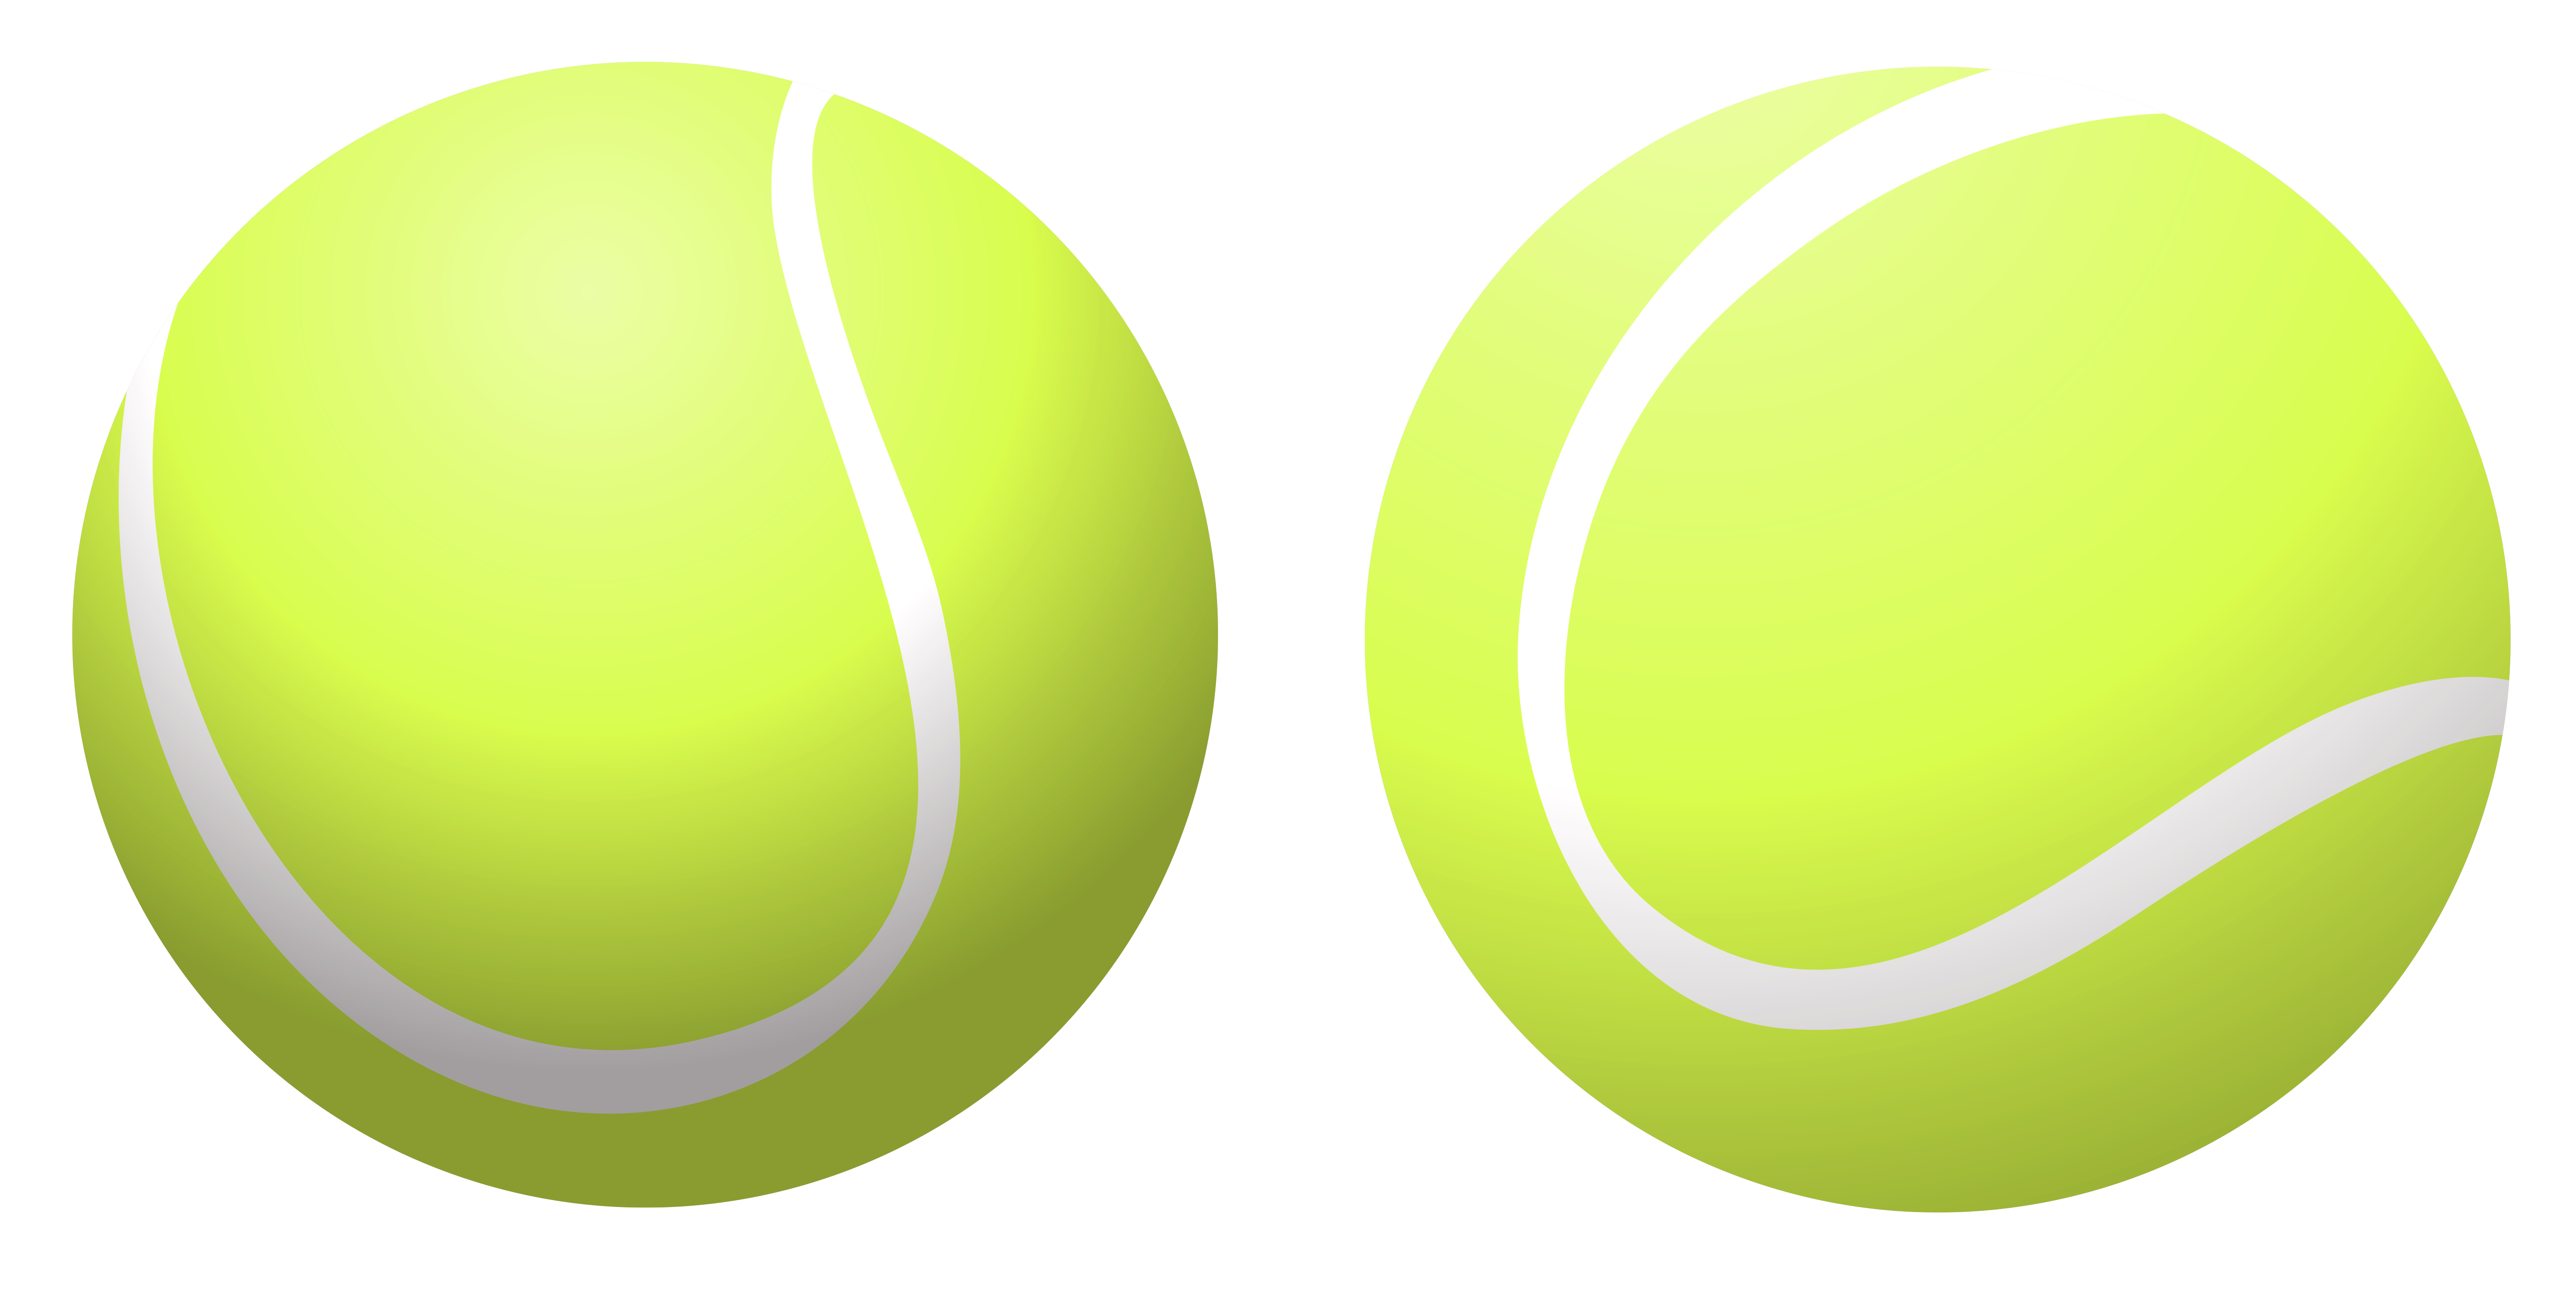 Tennis ball clipart png. Pictur gallery yopriceville high